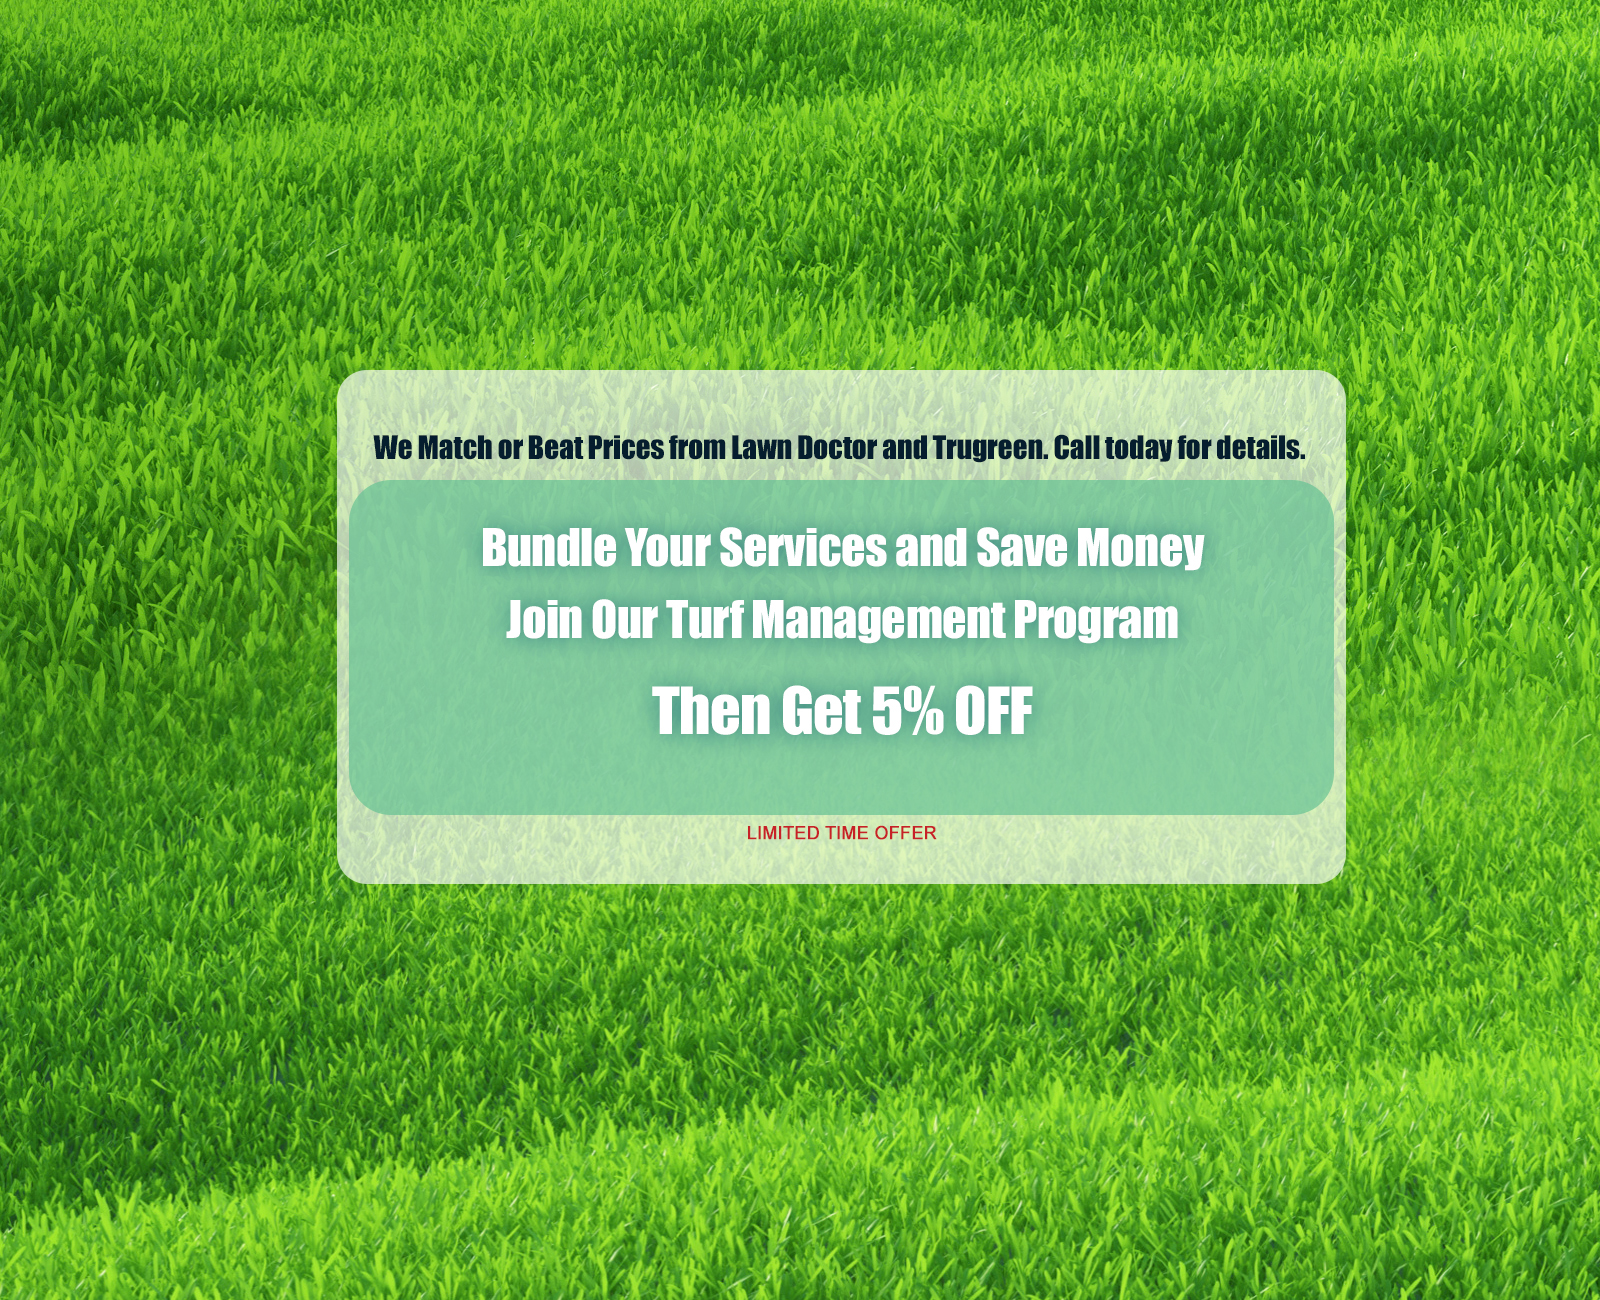 Bundle Your Services and Save Money. Join Our Turf Management Program. Then get 10% OFF.